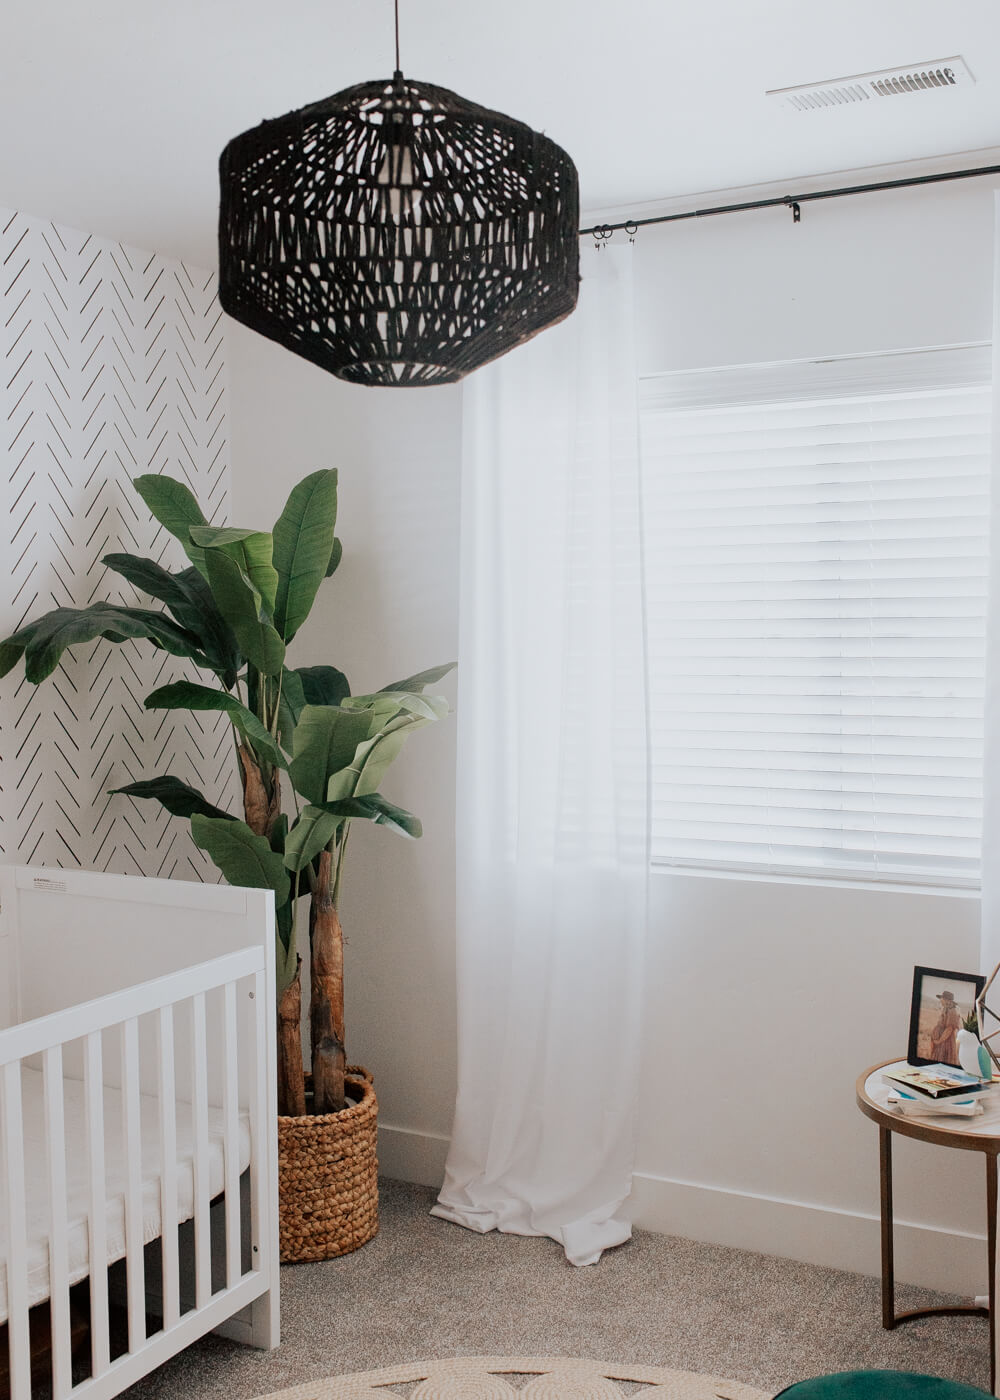 Modern minimal nursery design with black boho decor, removable wallpaper and banana leaf palm tree